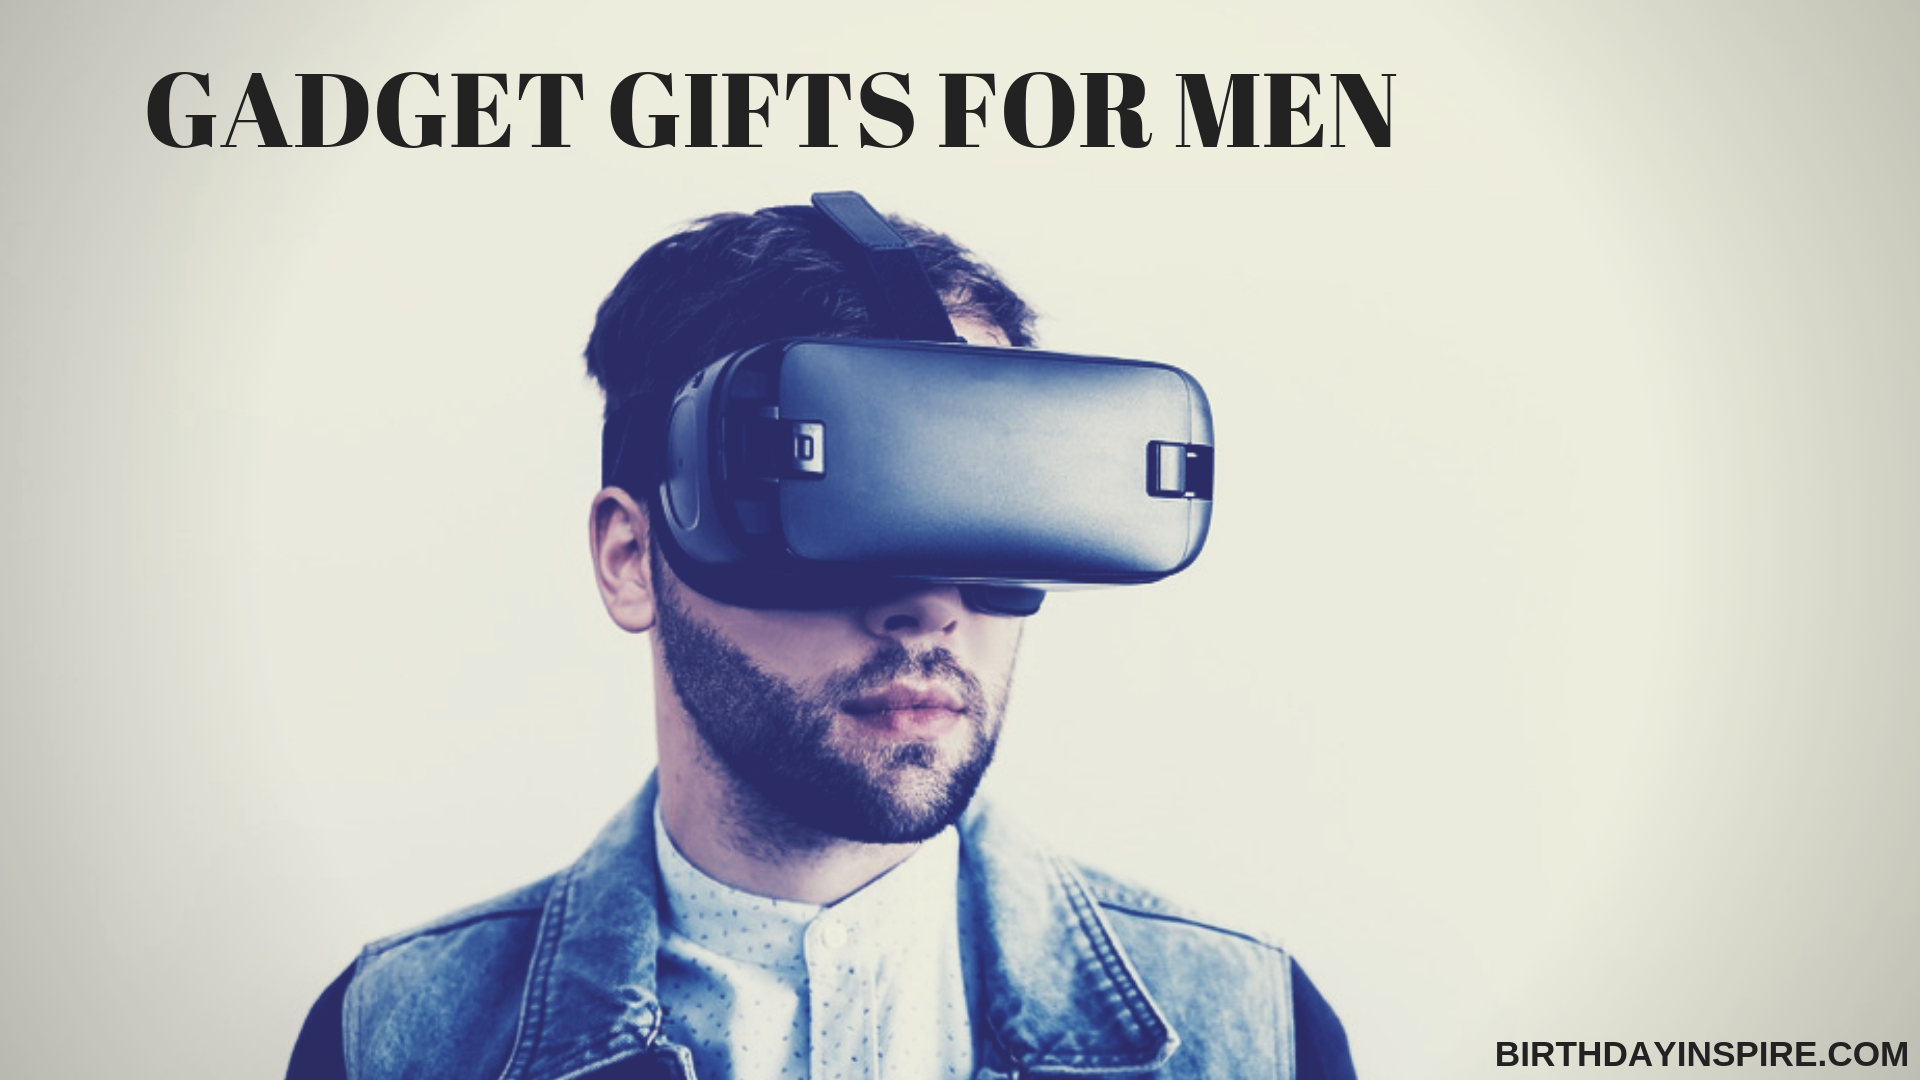 GADGET GIFTS FOR MEN